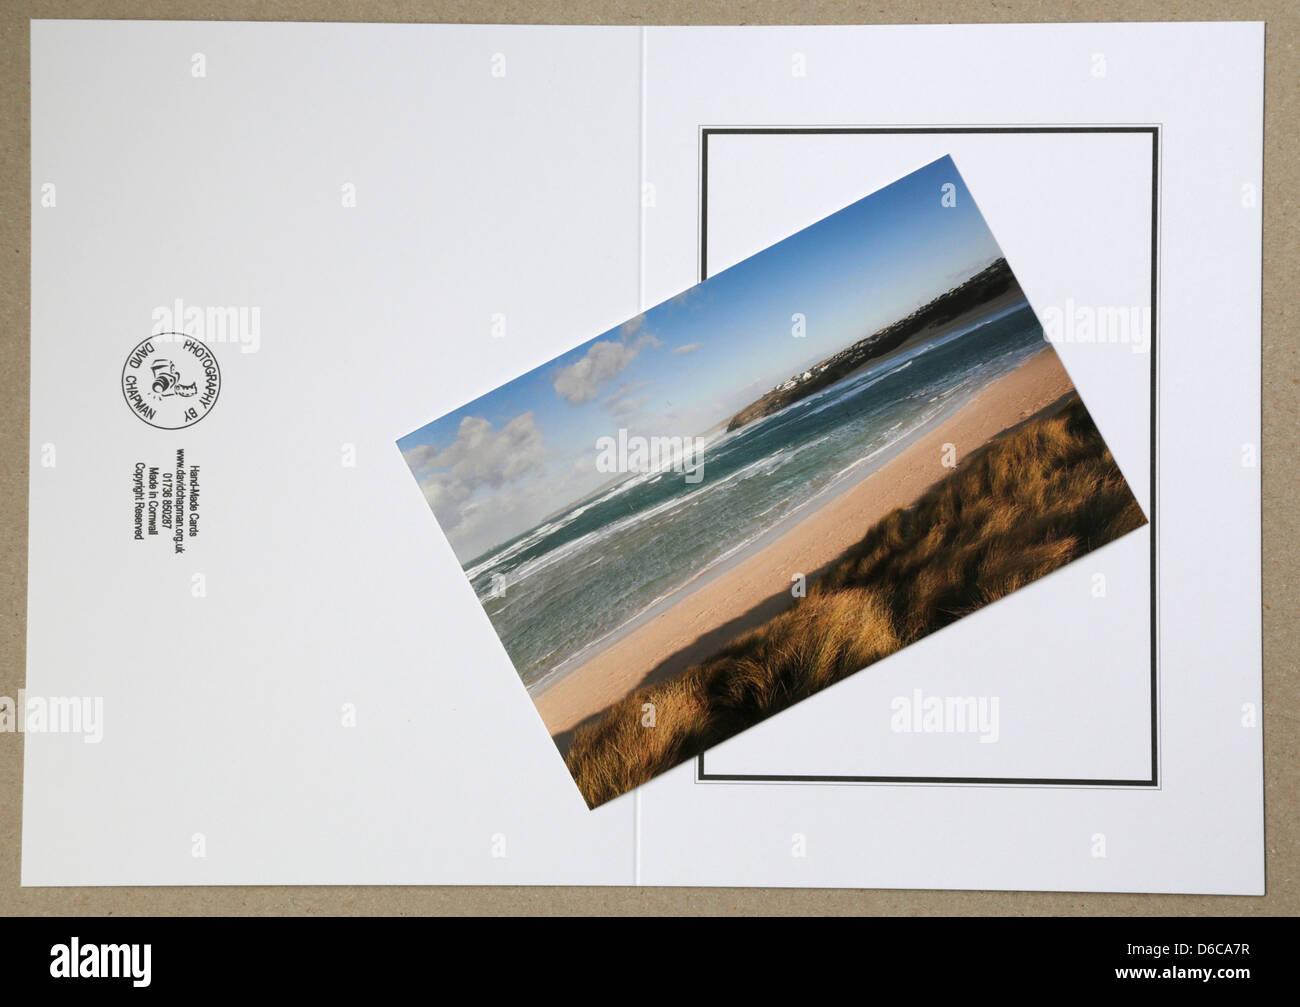 Greetings Card Ready to Make Up; Photo and Card - Stock Image